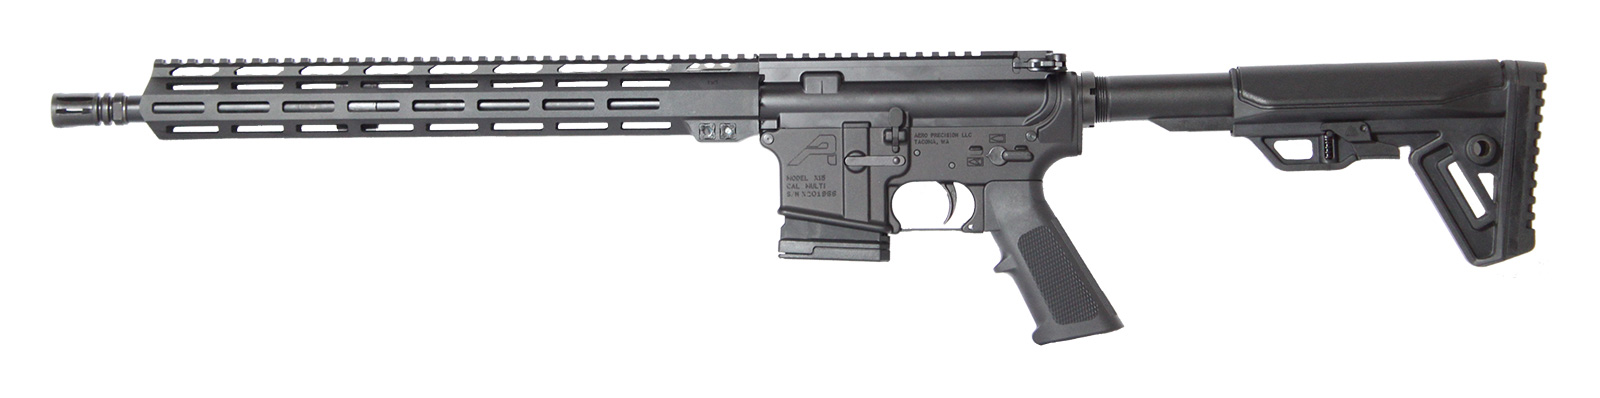 ar15-complete-rifle-16-inches-m-lok-rail-aero-pericision-lowe-200121